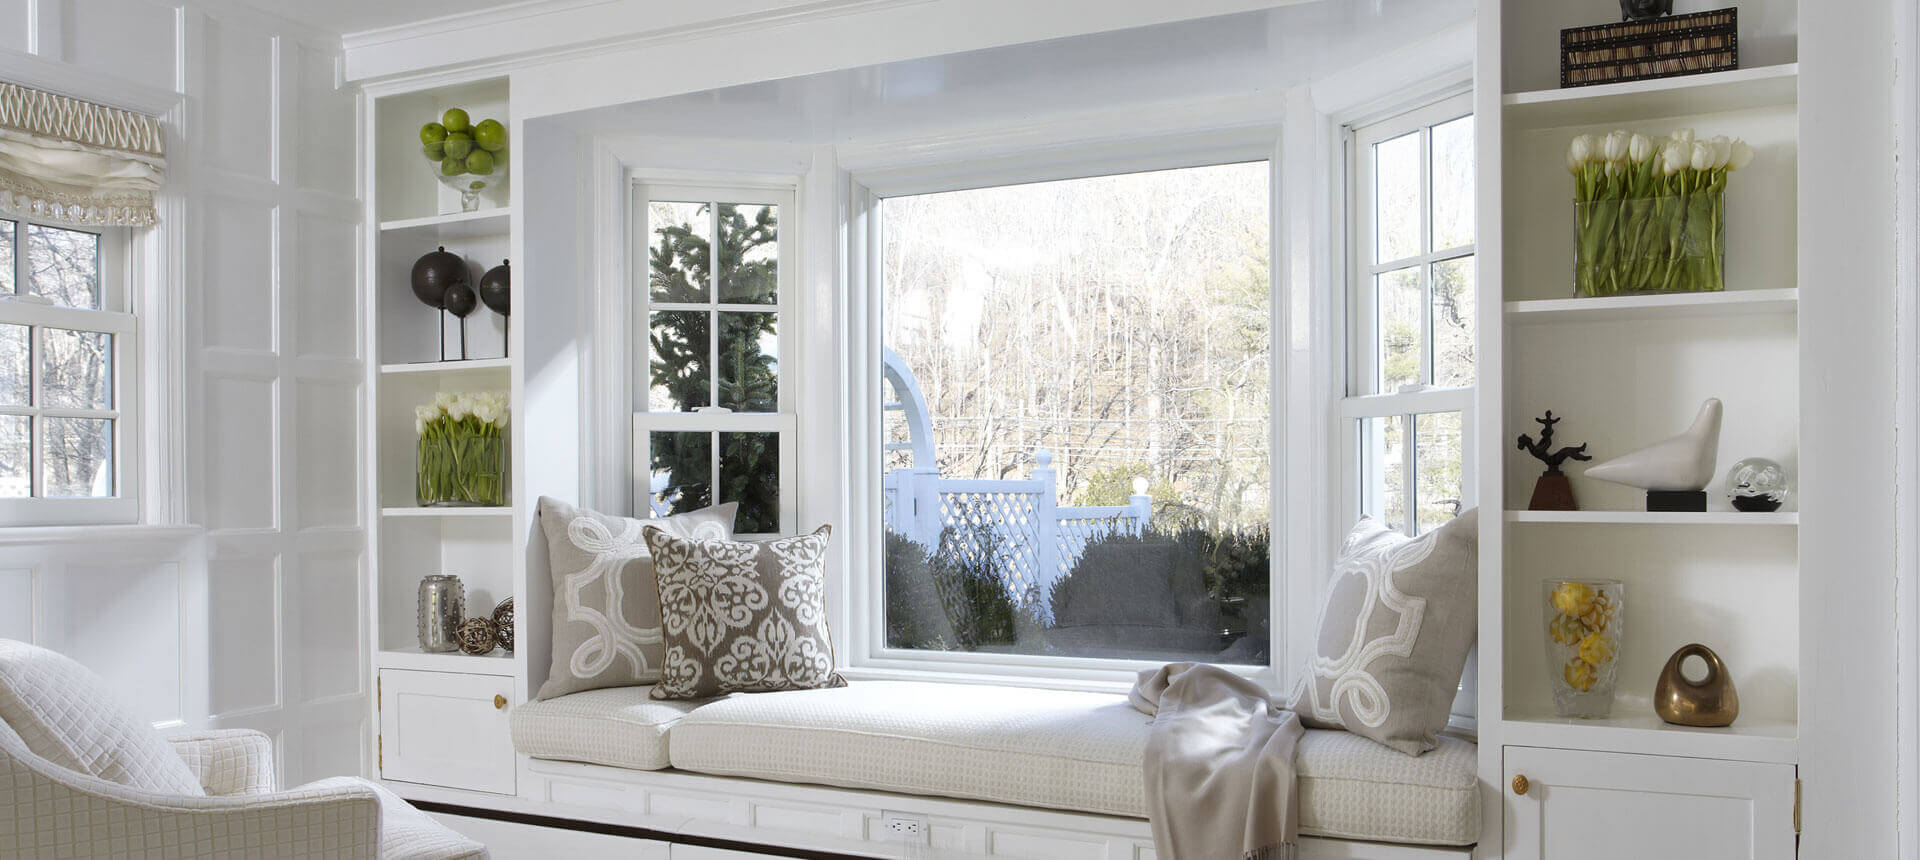 A-big-window-seat-as-a-focal-point-in-a-minimalist-room